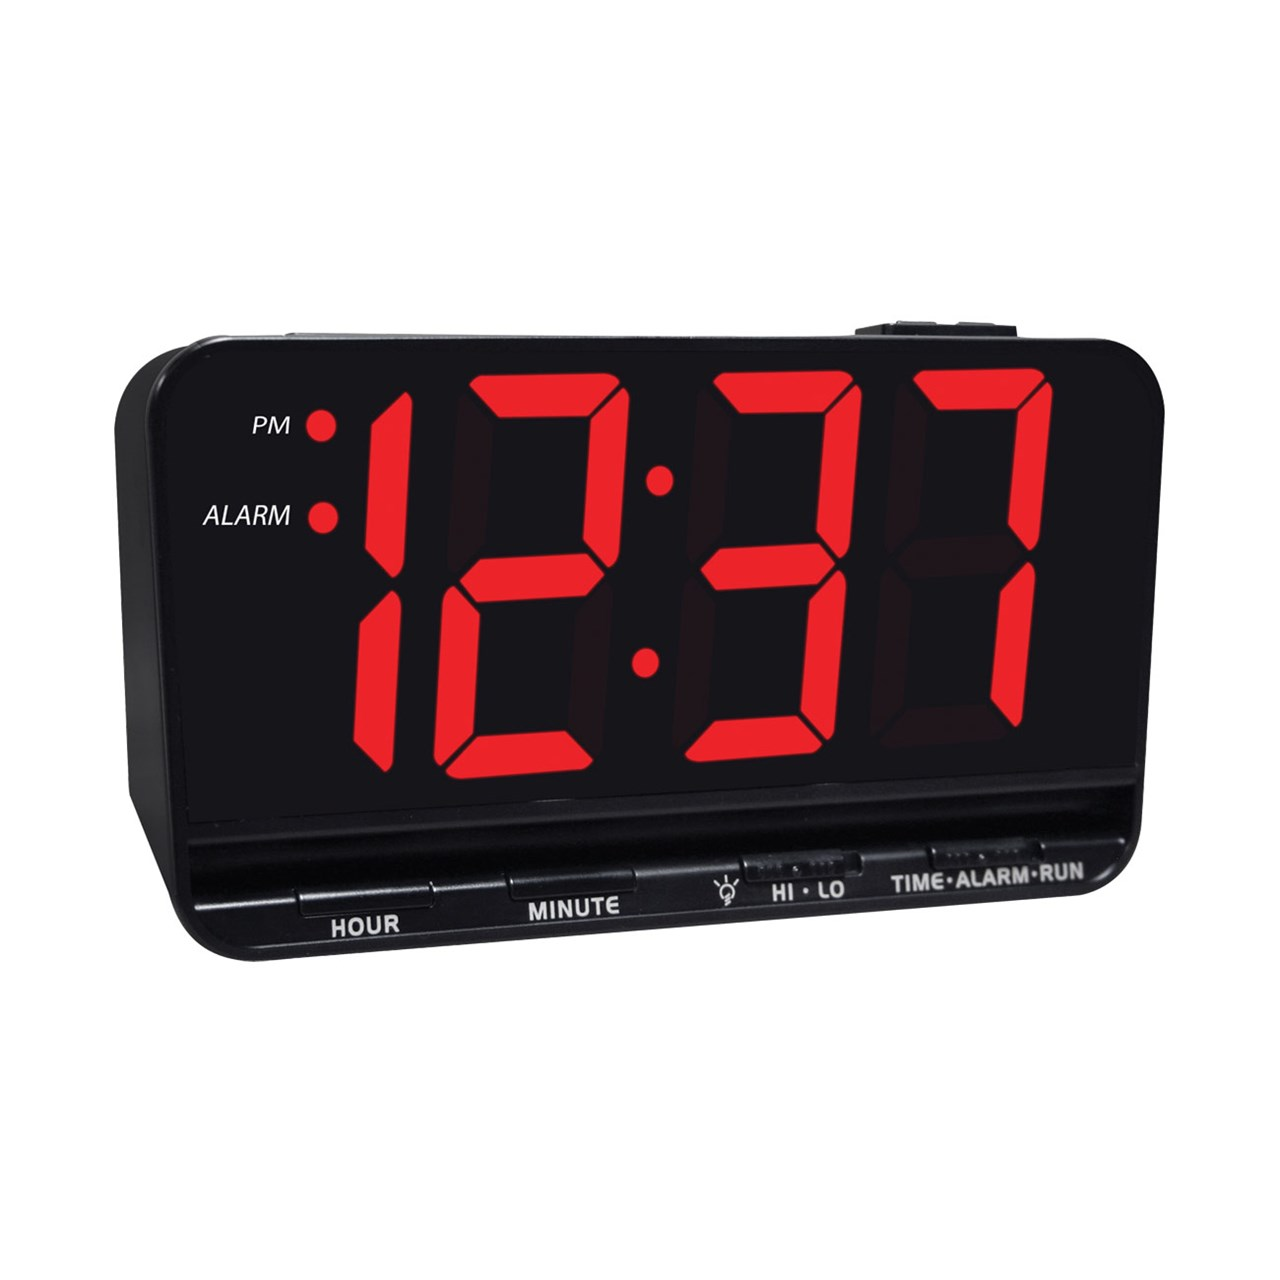 Maxiaids Jumbo Display Digital Alarm Clock With 3 Inch Led